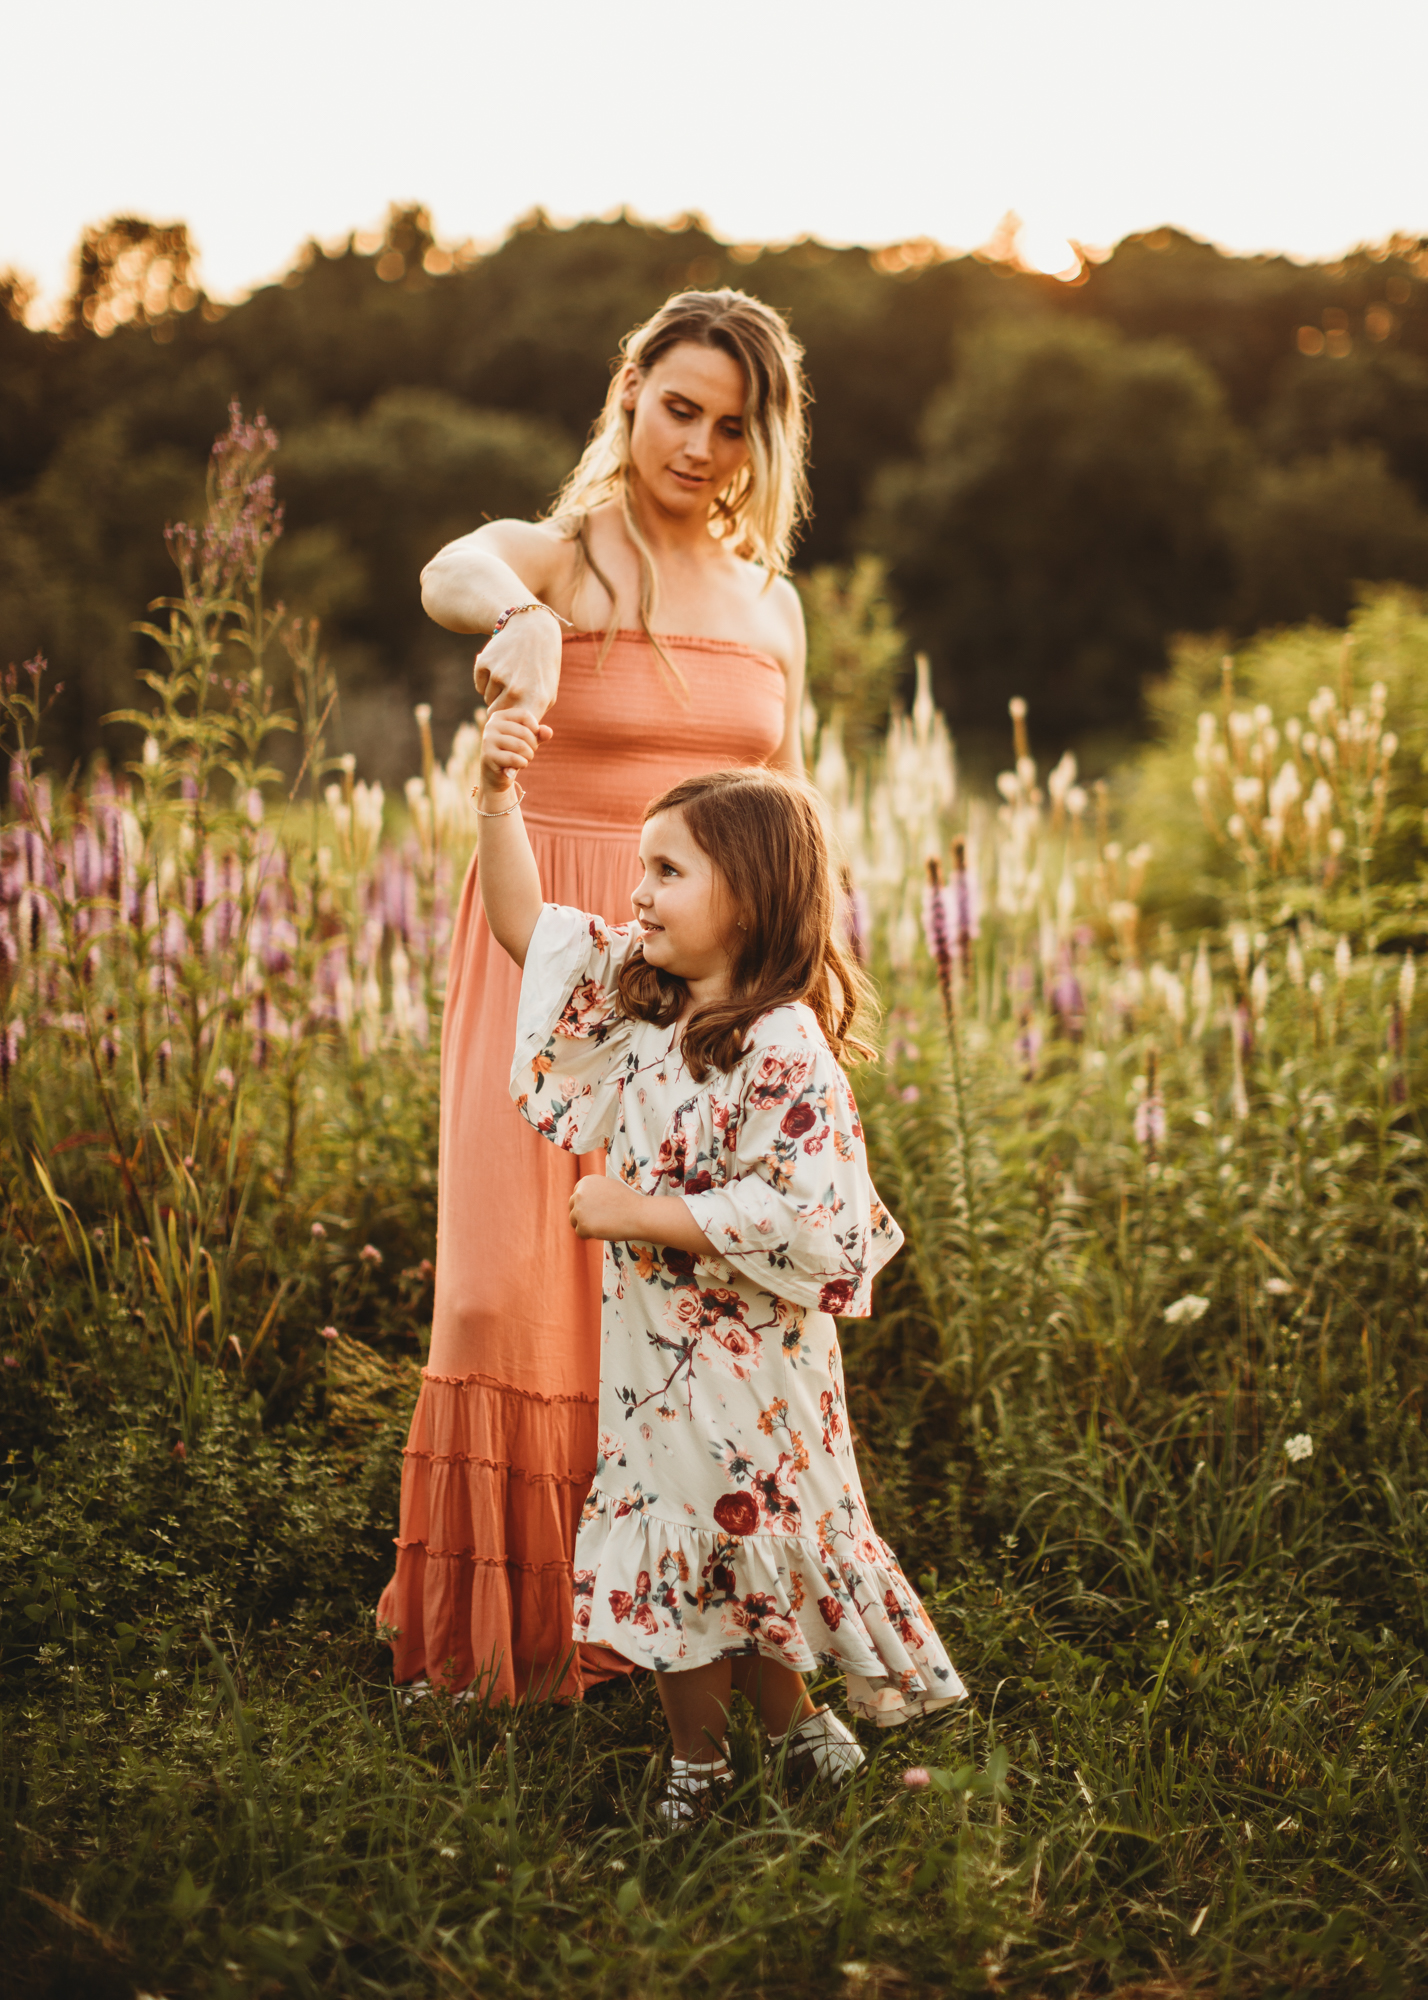 Mother in a long boho dress twirling five-year-old daughter during their sunset family portrait session in Framingham, MA. Greater Boston family photography. Summertime family photos.